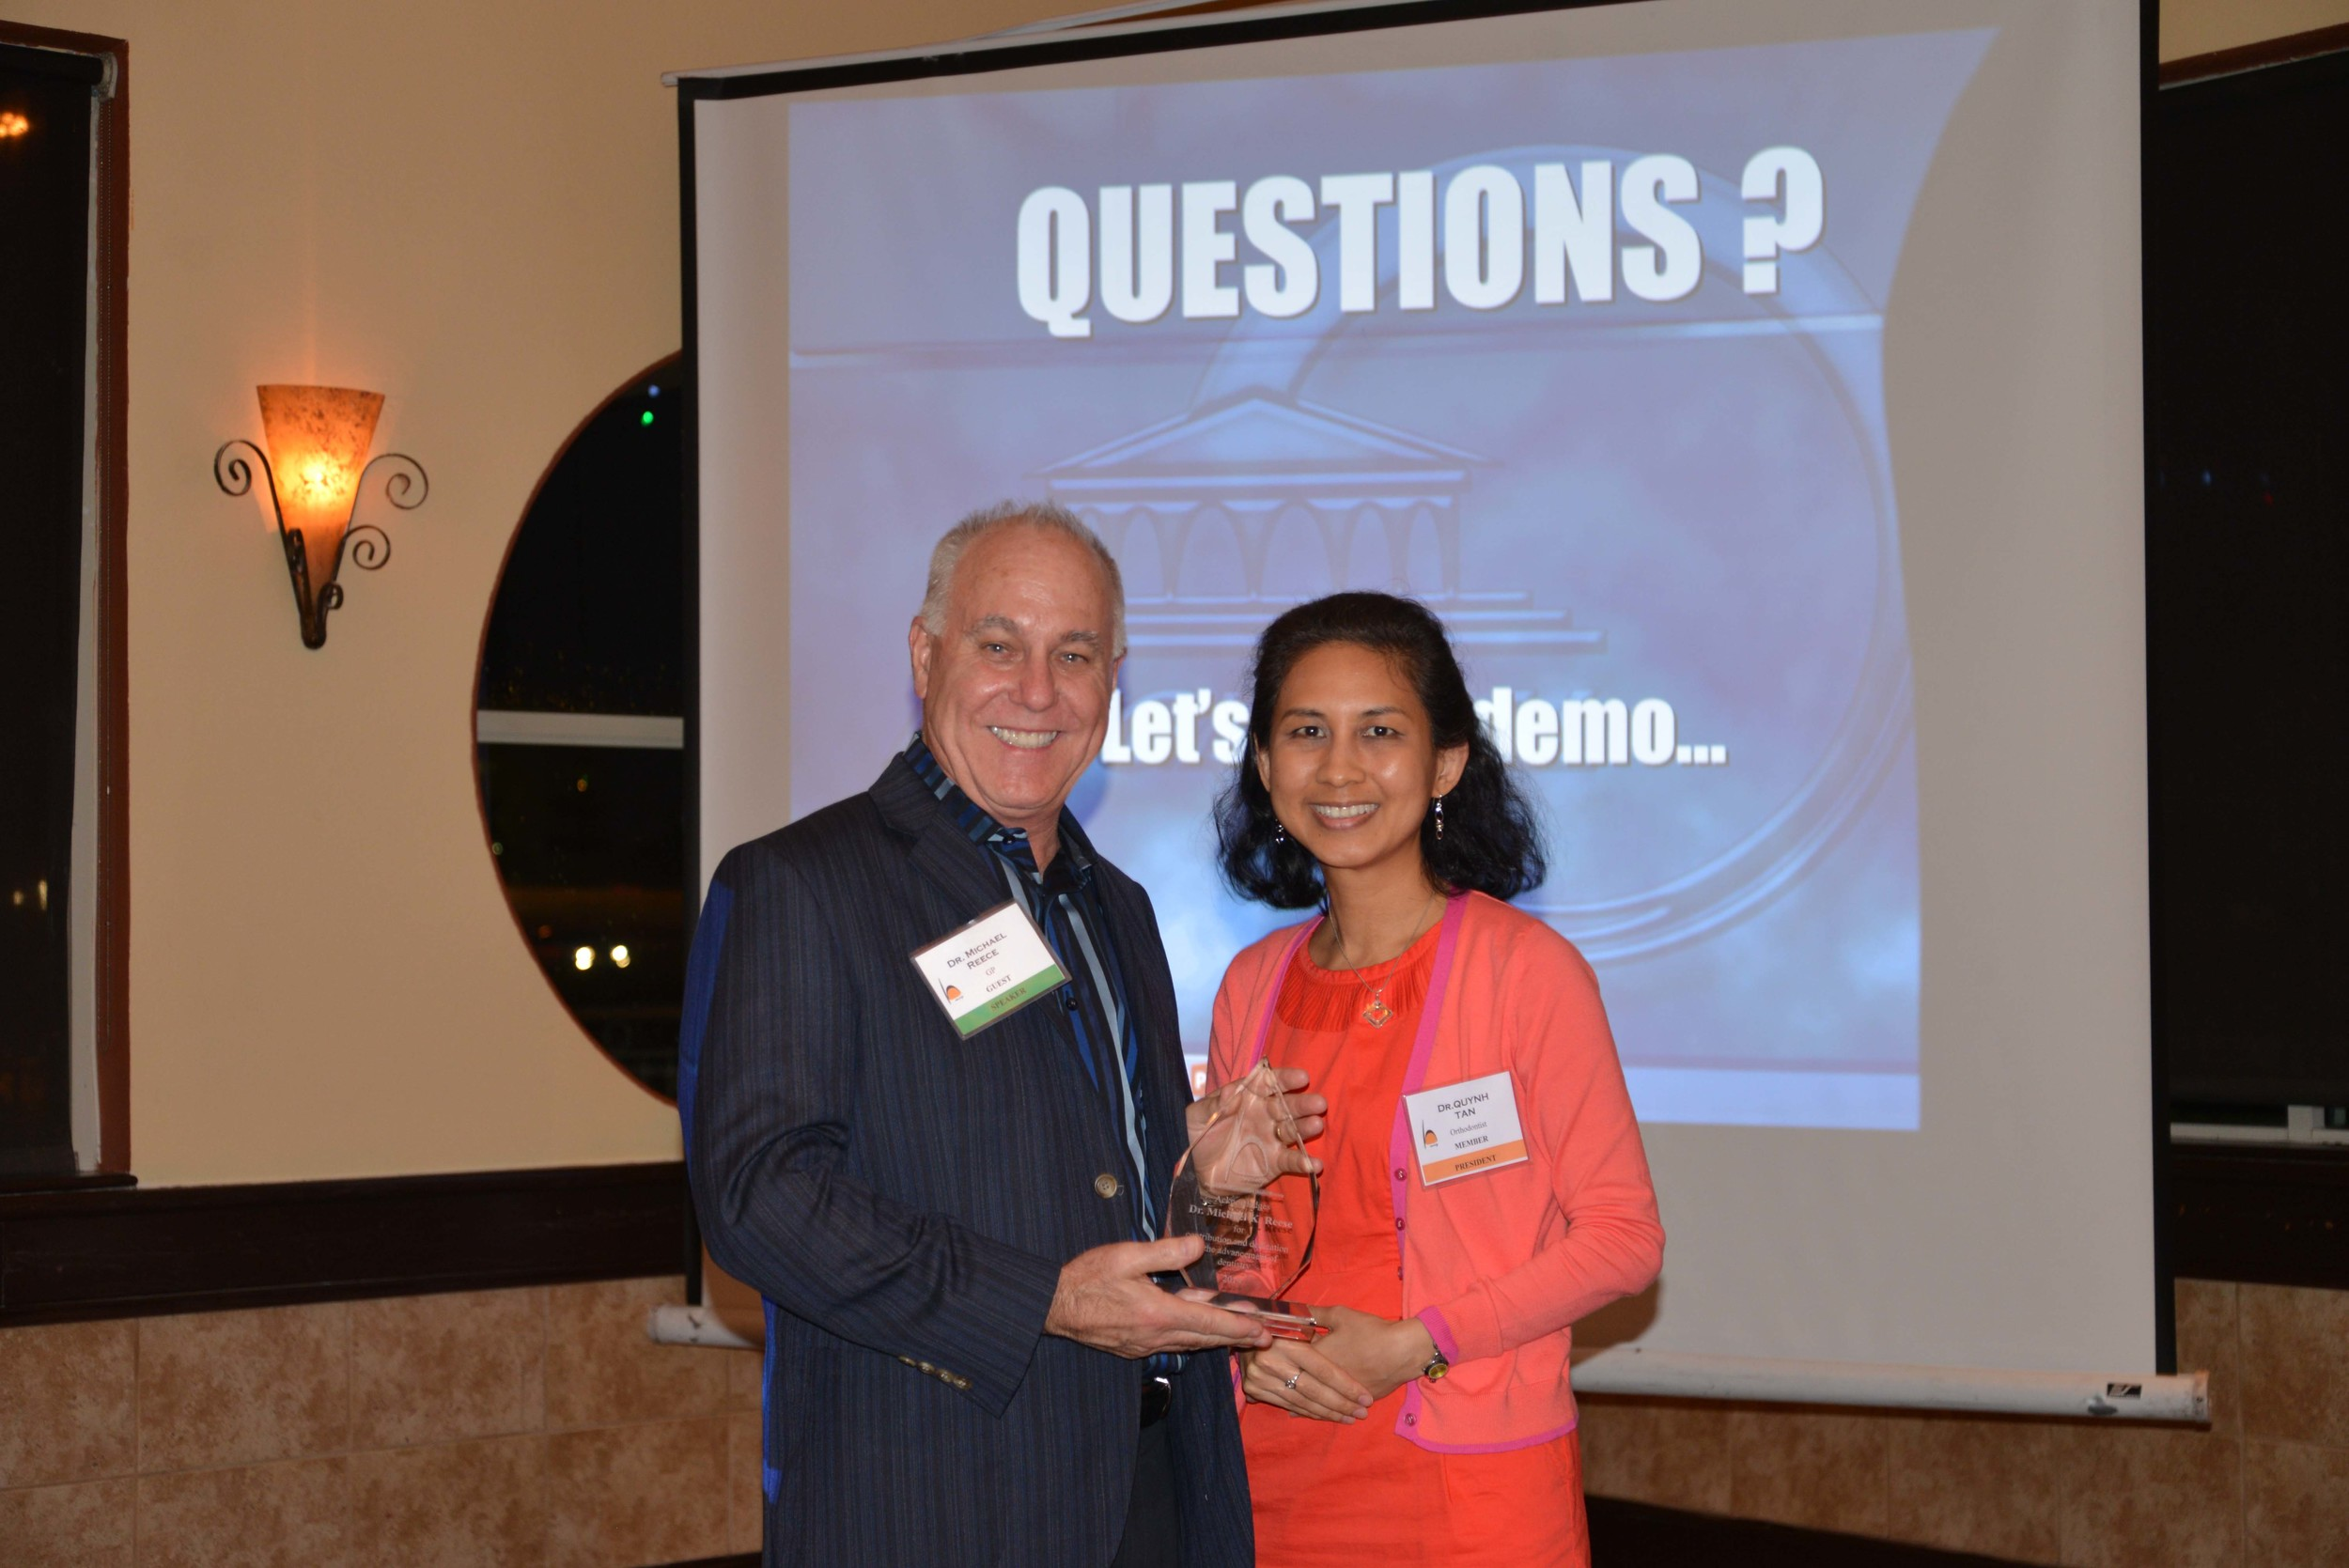 Dr. Reece is presented an award from the President of Houston Asian American Dental Society, Dr. Quynh Tan.